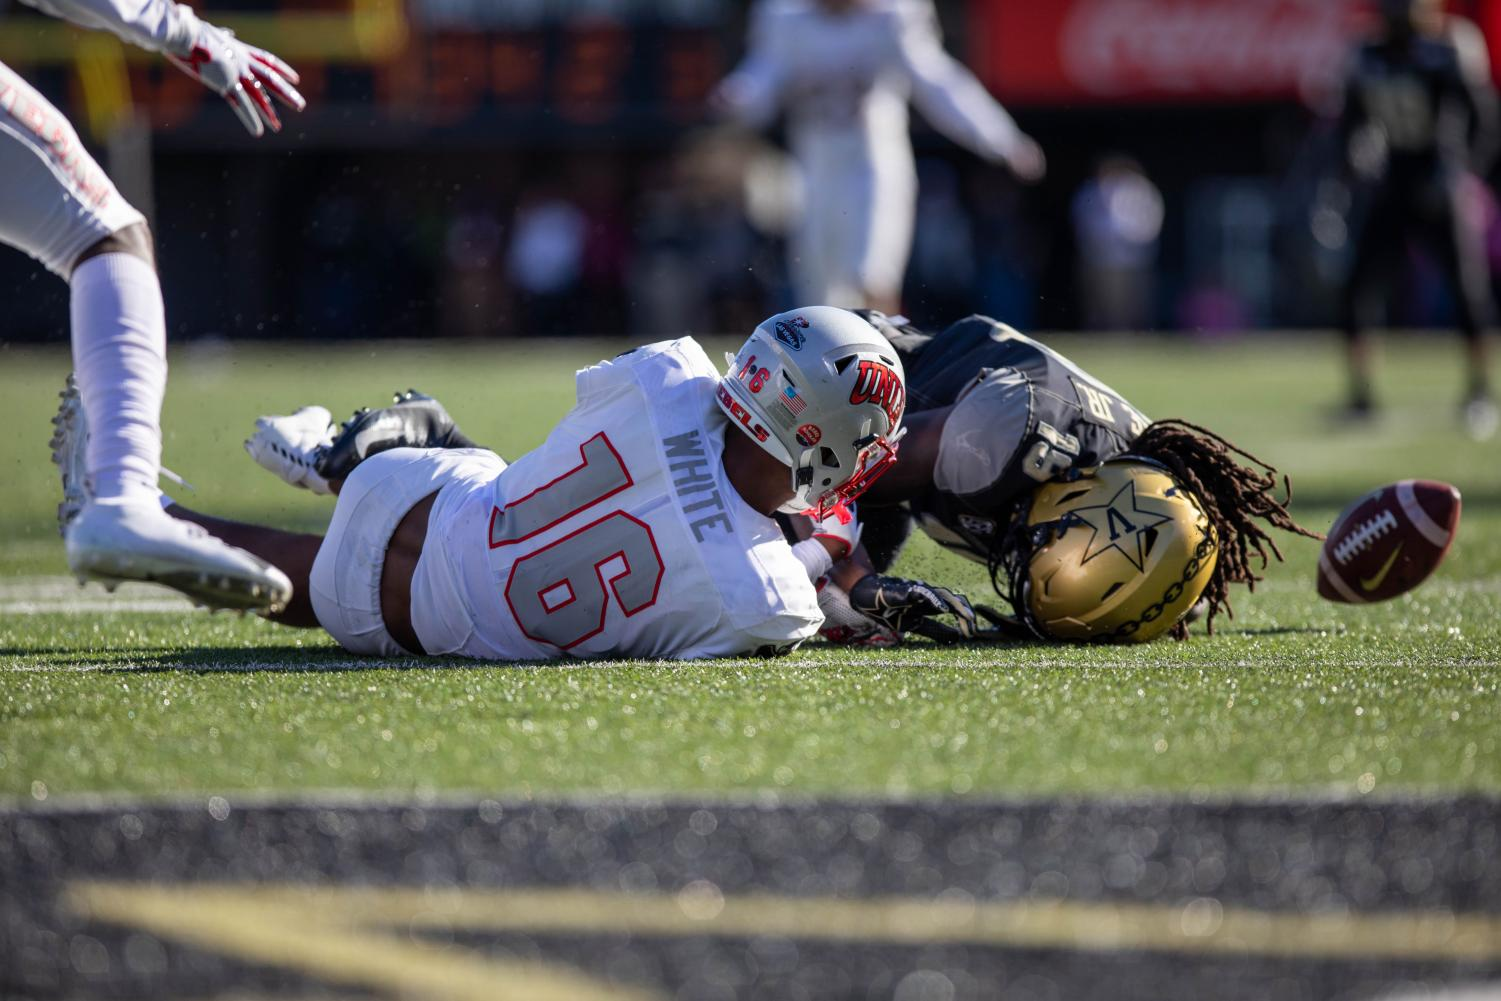 Vanderbilt faces UNLV on October 12, 2019.